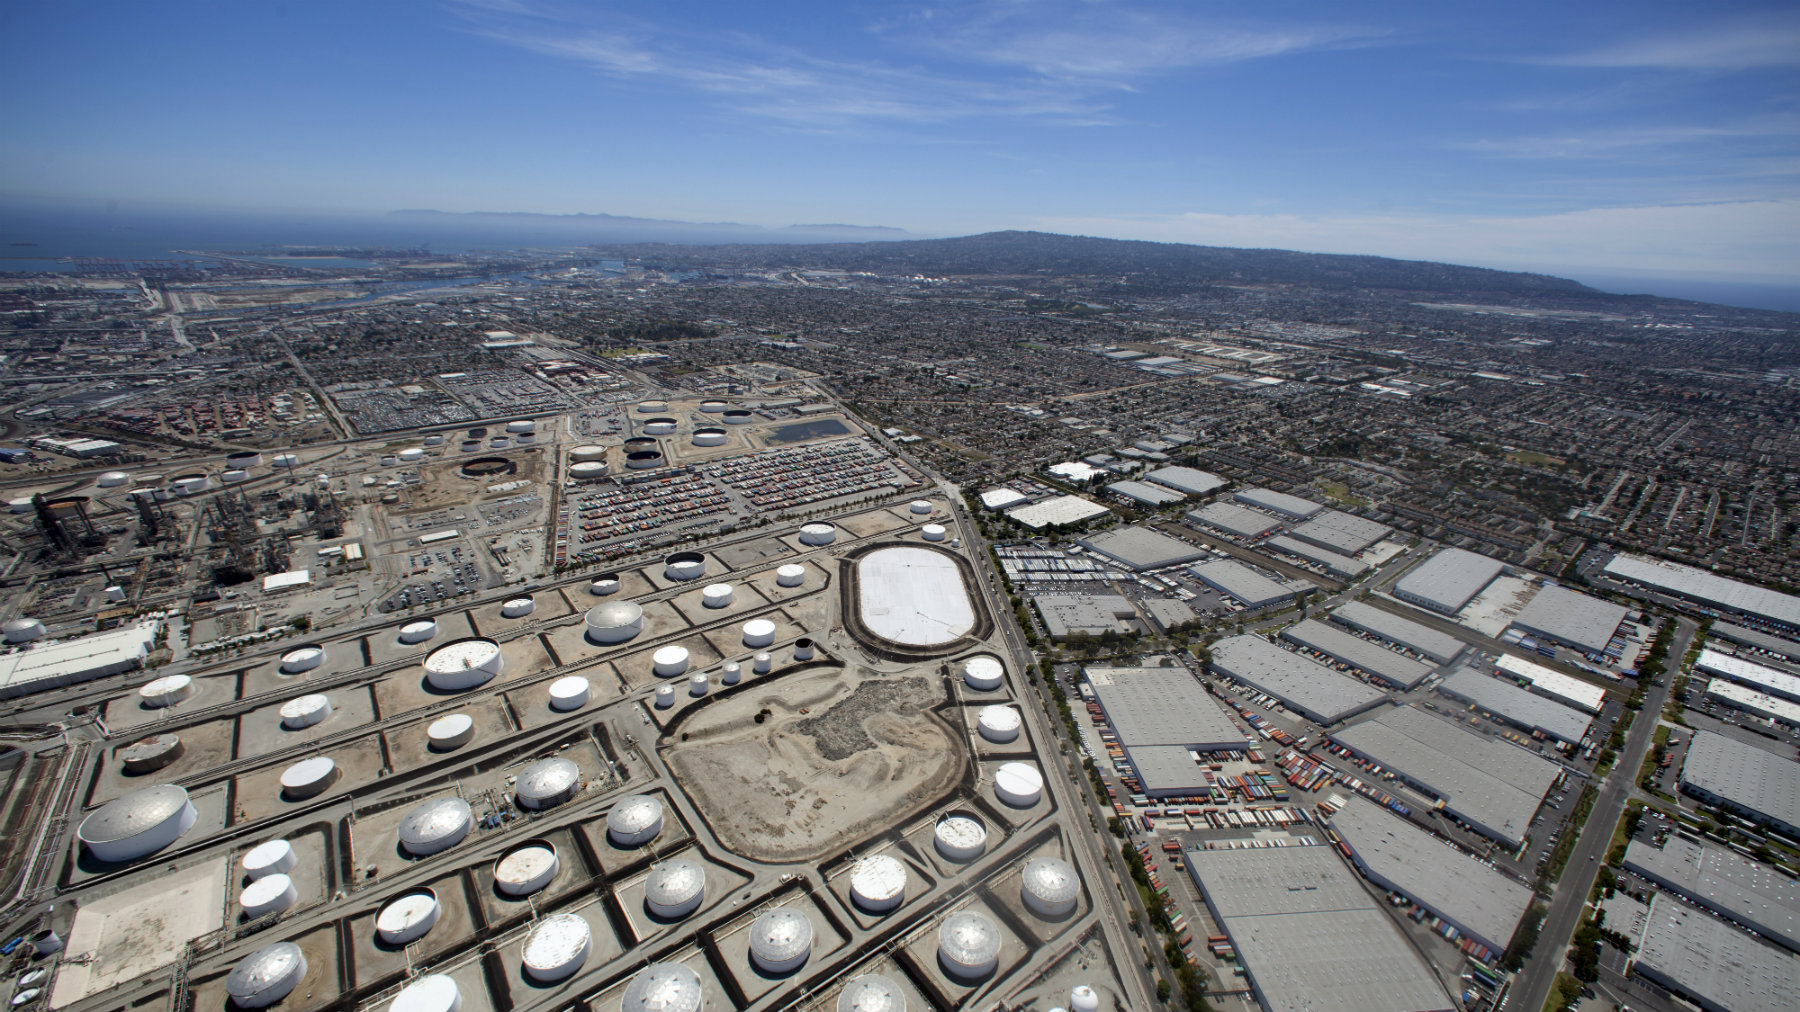 The Tesoro oil refinery is viewed from the air in Carson, California August 5, 2015. REUTERS/Mike Blake